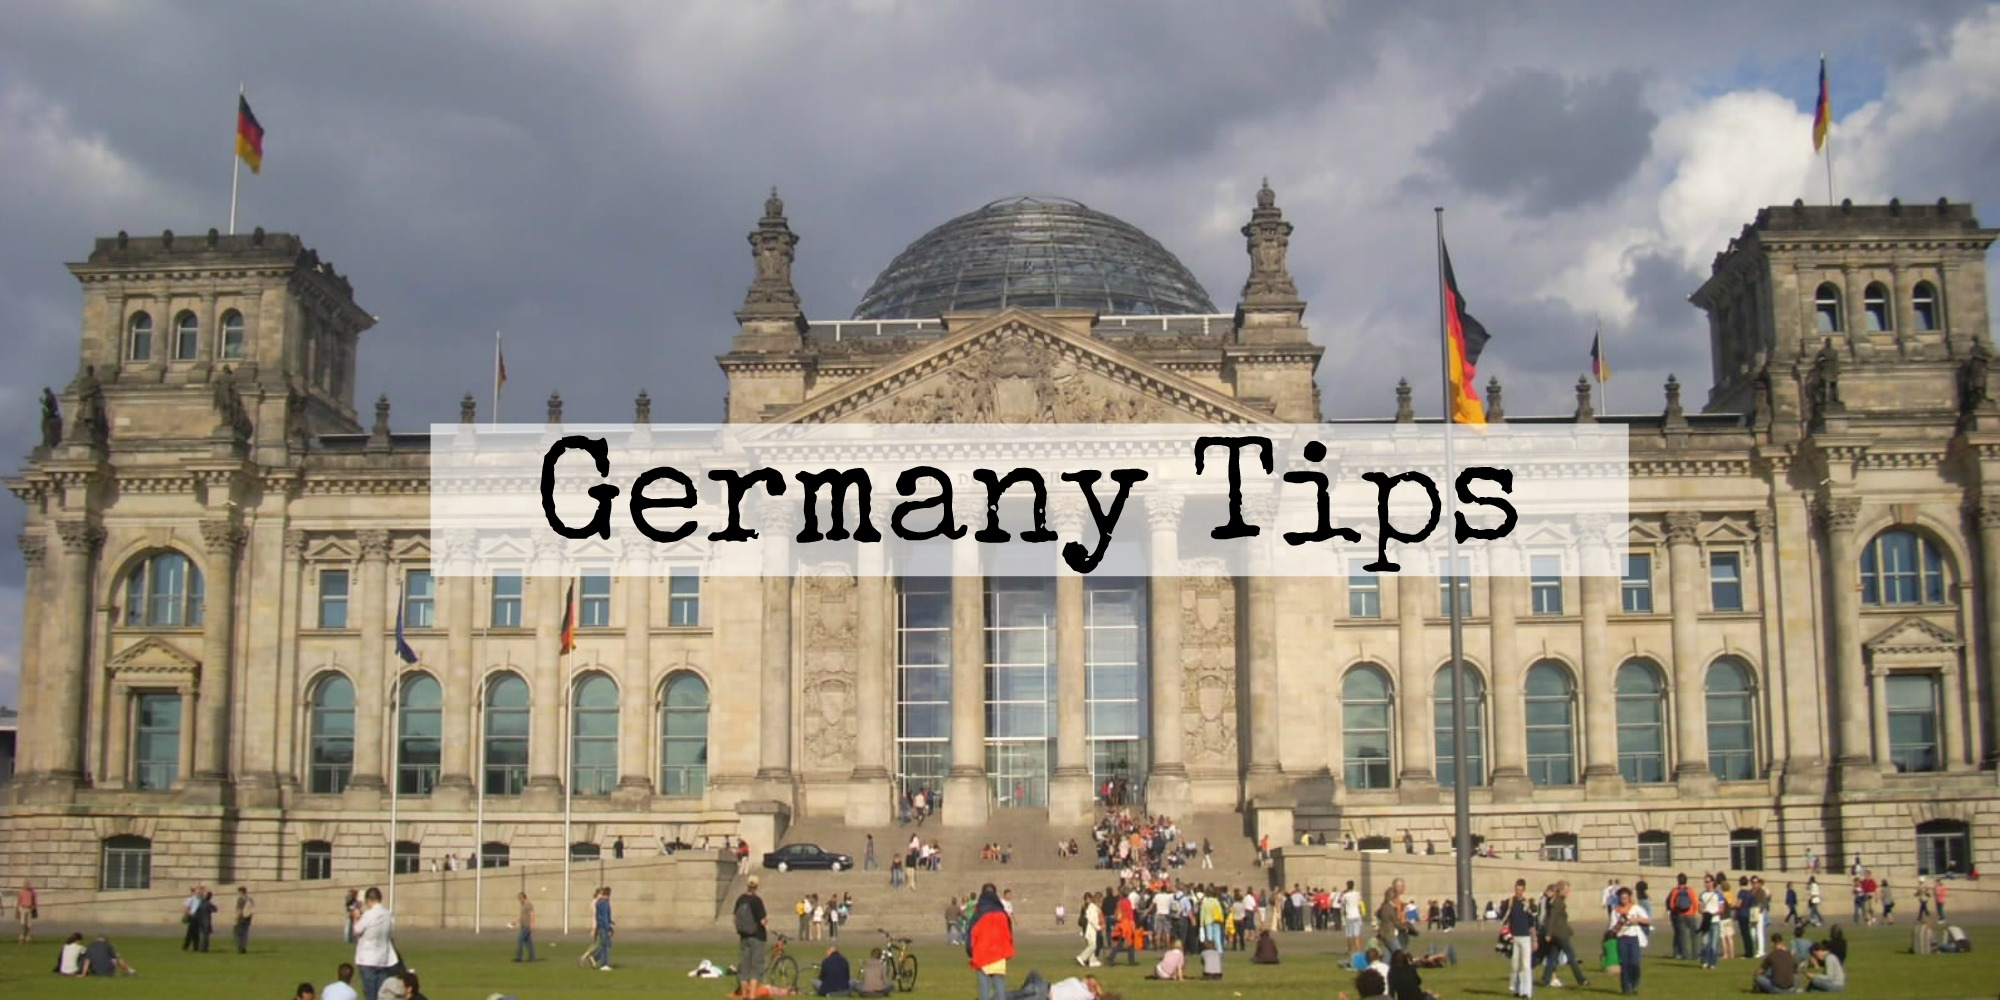 Germany Tips